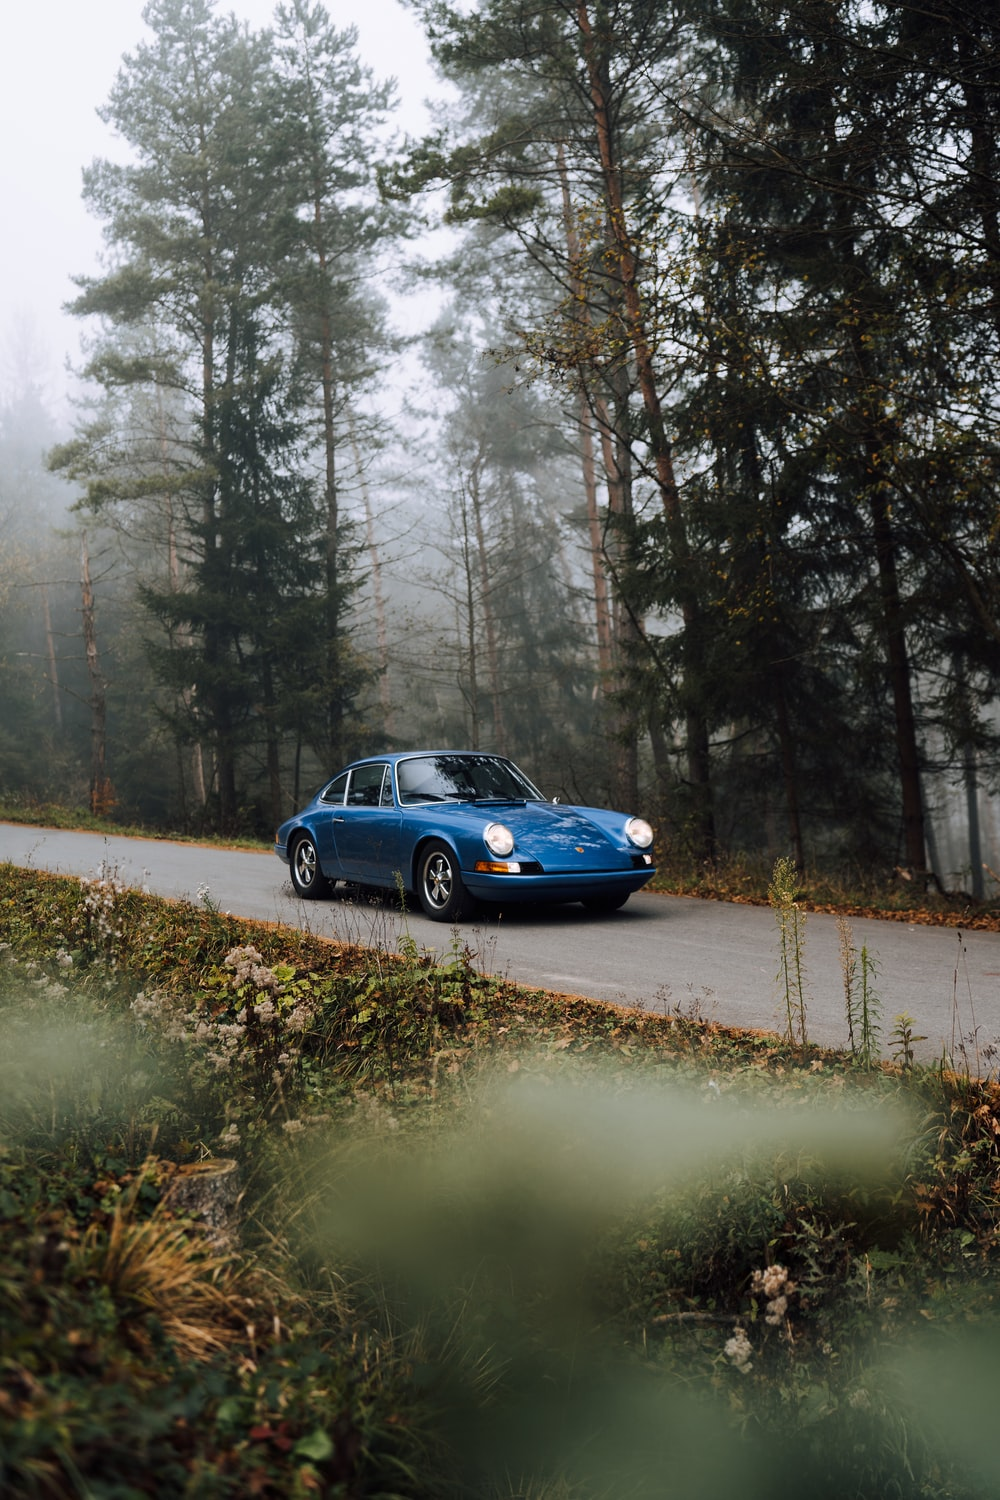 blue sedan on road surrounded by trees